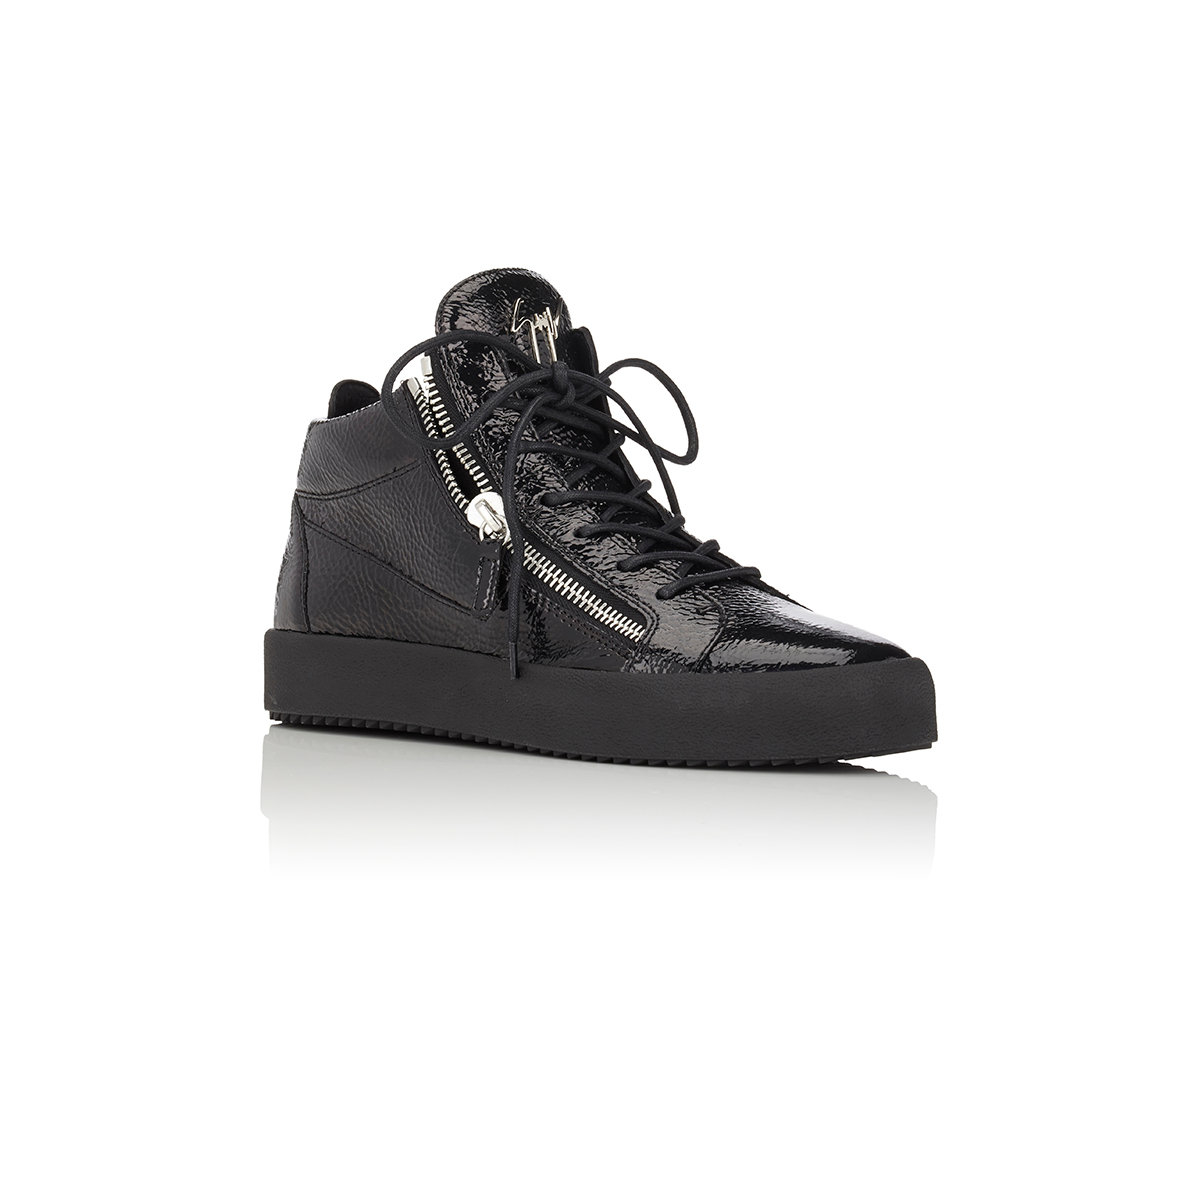 giuseppe zanotti zip mid top sneakers in black for